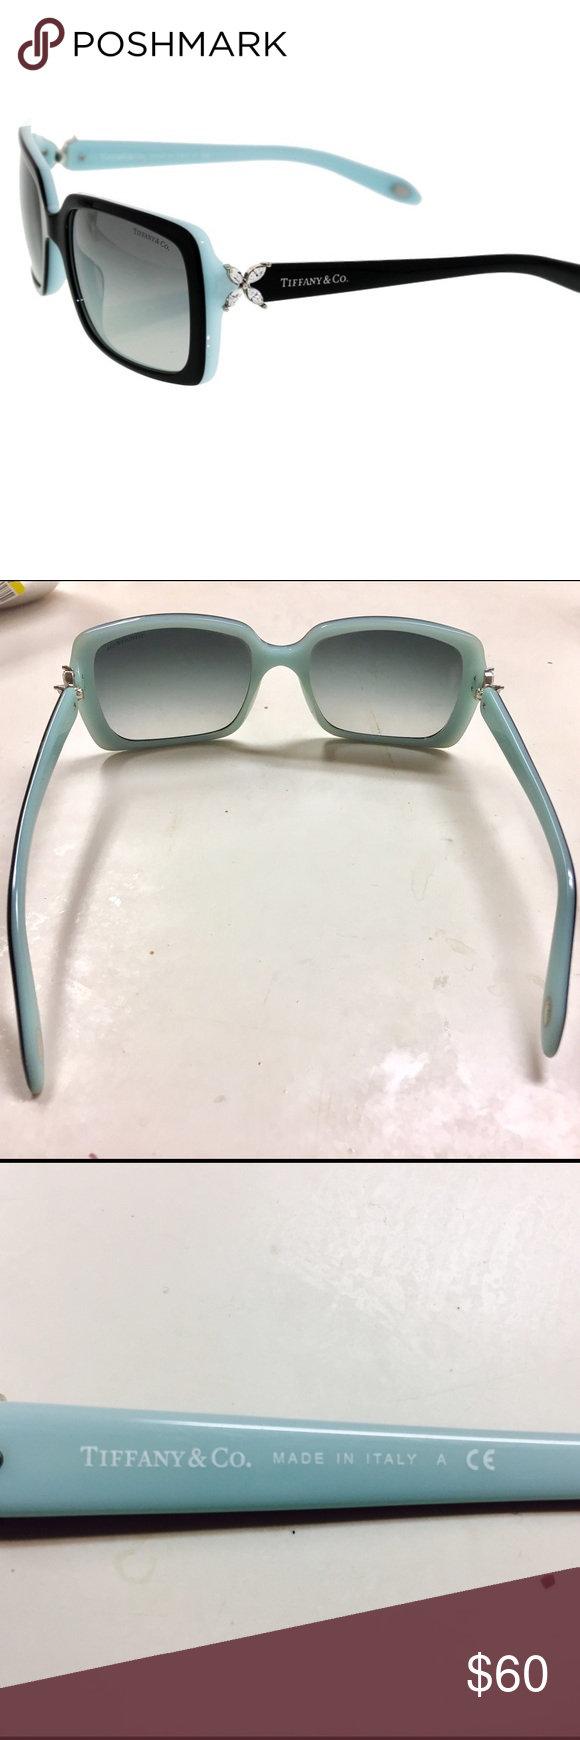 ecc16cb2dbf TIFFANY SUNGLASSES TIF 4047B BLACK 8055 3C TIF4047 I bought in Amazon with  237 . I lost the original sunglasses box. But I can give you another box  instead.